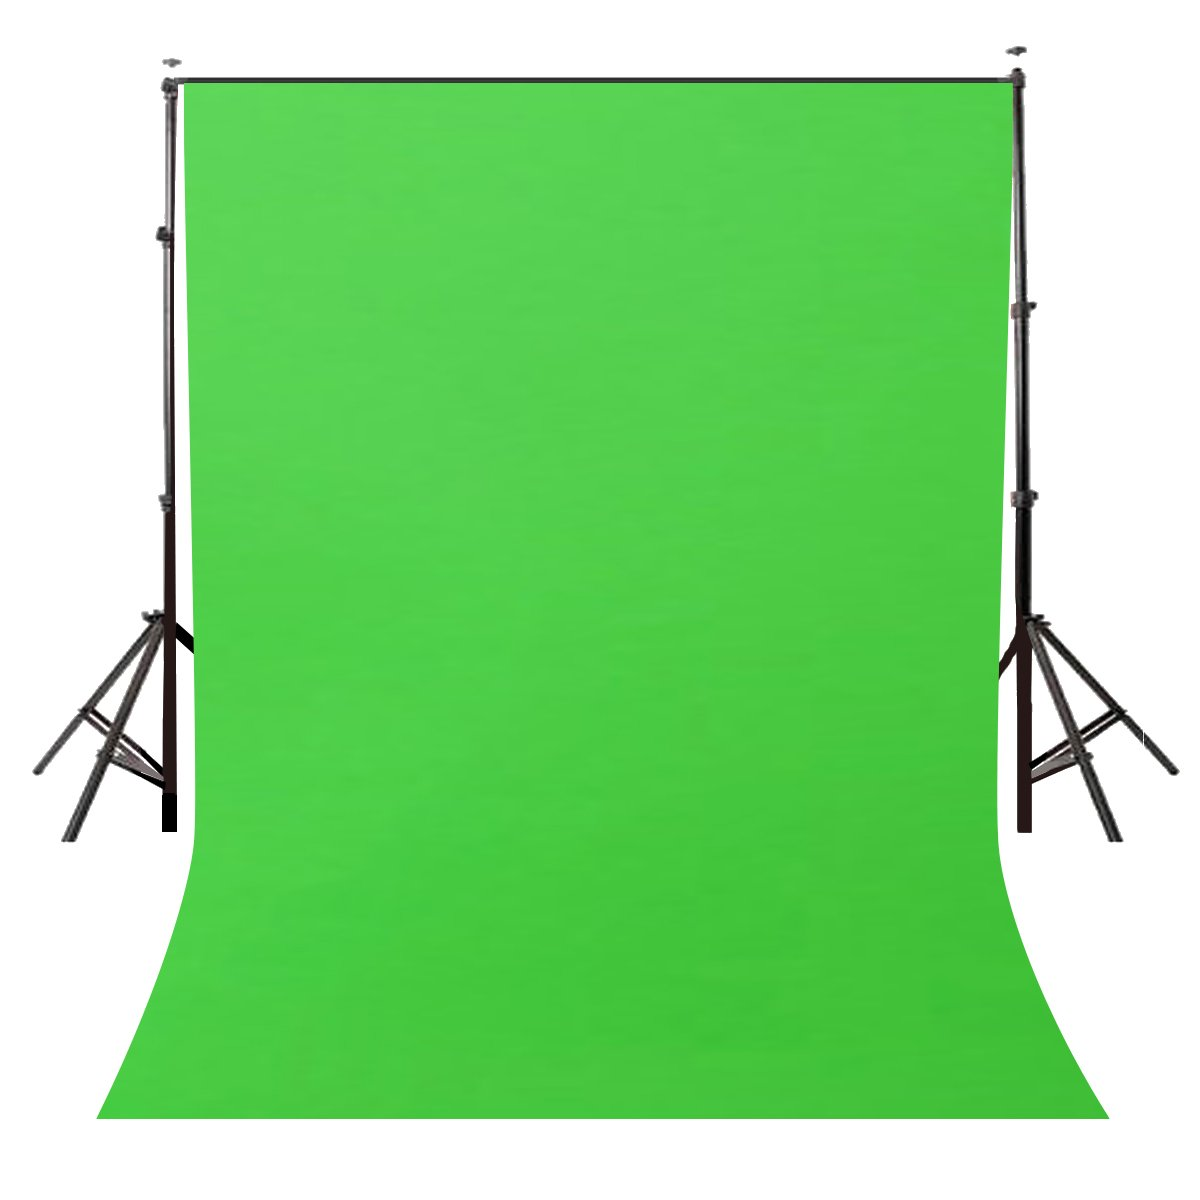 LYLYCTY Background 5x7ft Non-Woven Fabric Solid Color Green Screen Photo Backdrop Studio Photography Props LY063 by LYLYCTY